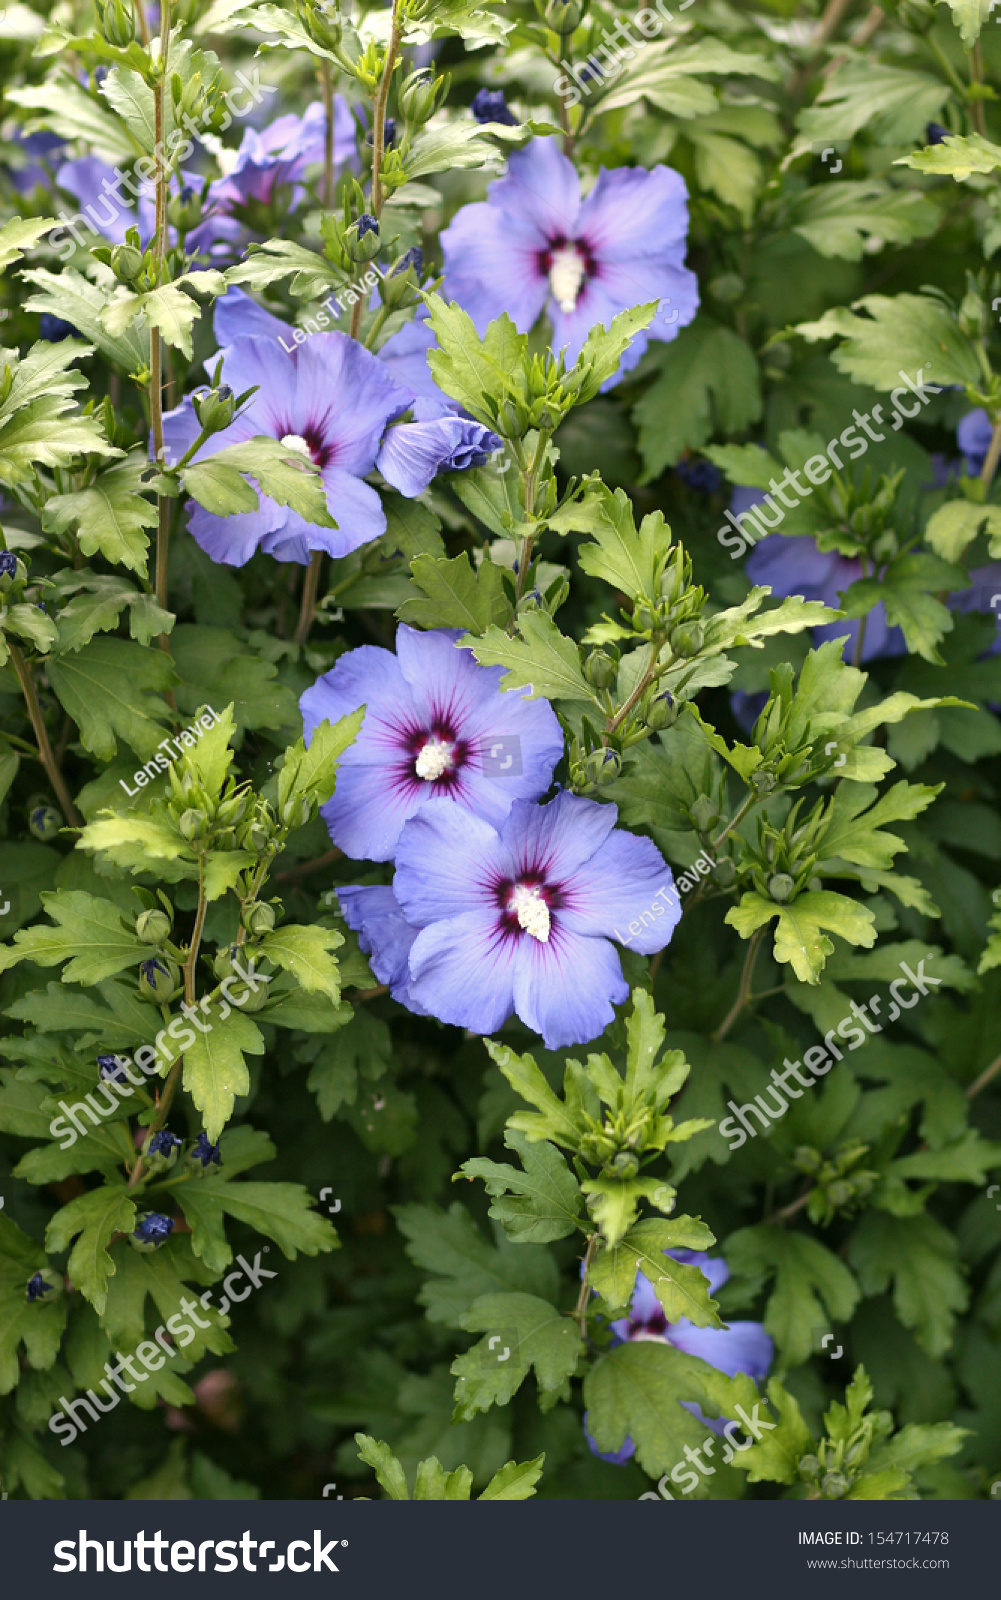 Blue Violet White Flowers Hibiscus Syriacus Stock Photo Safe To Use